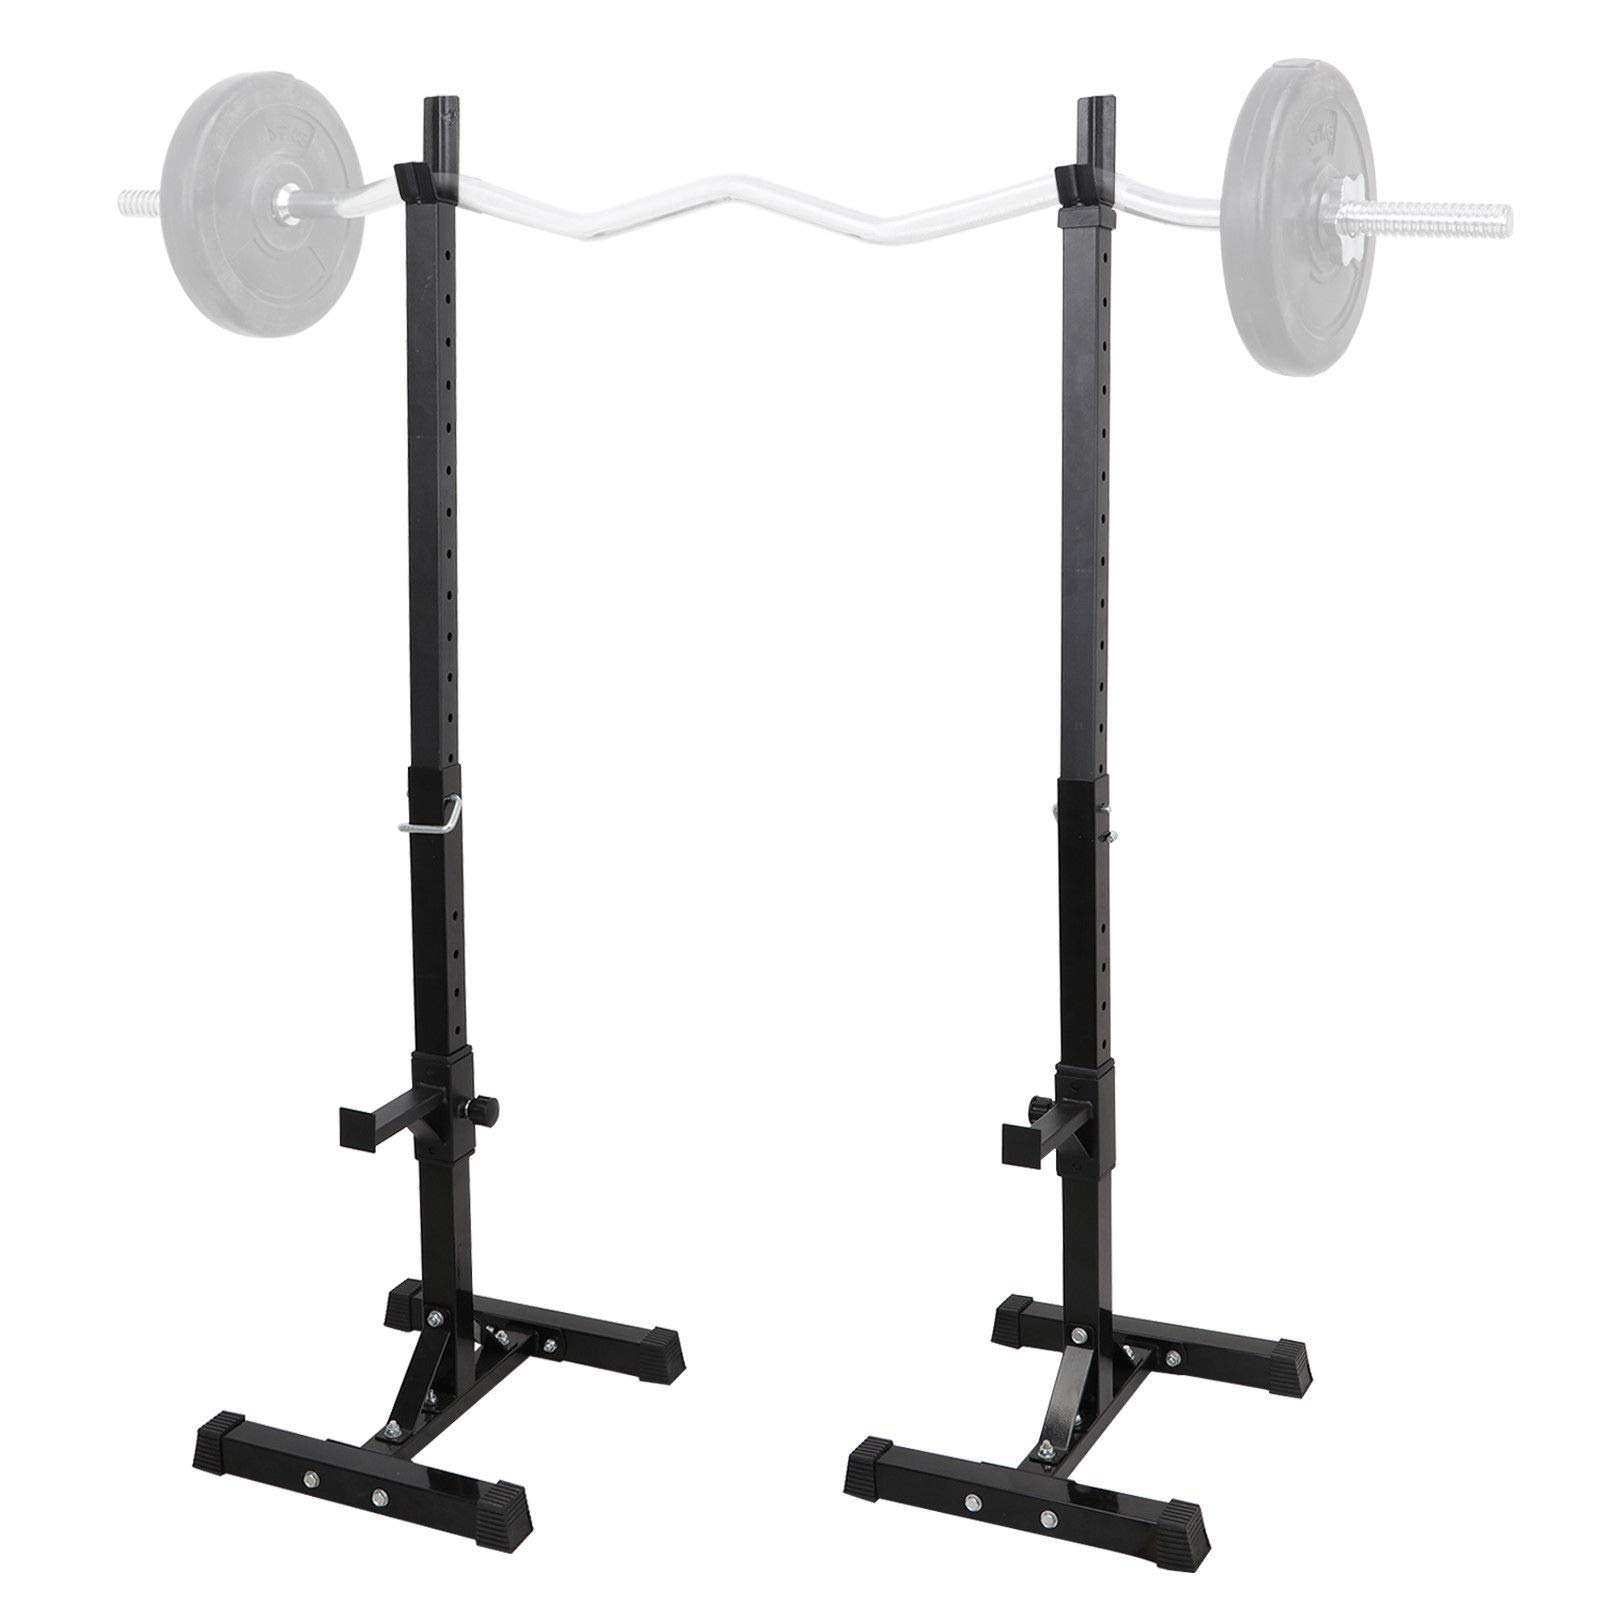 nitipezzo Sturdy Steel Provides The Maximum Safety for Your Home Exercise 1 Pair of Barbell Stands Adjustable Spotters for Your Safety with 13 Positions.